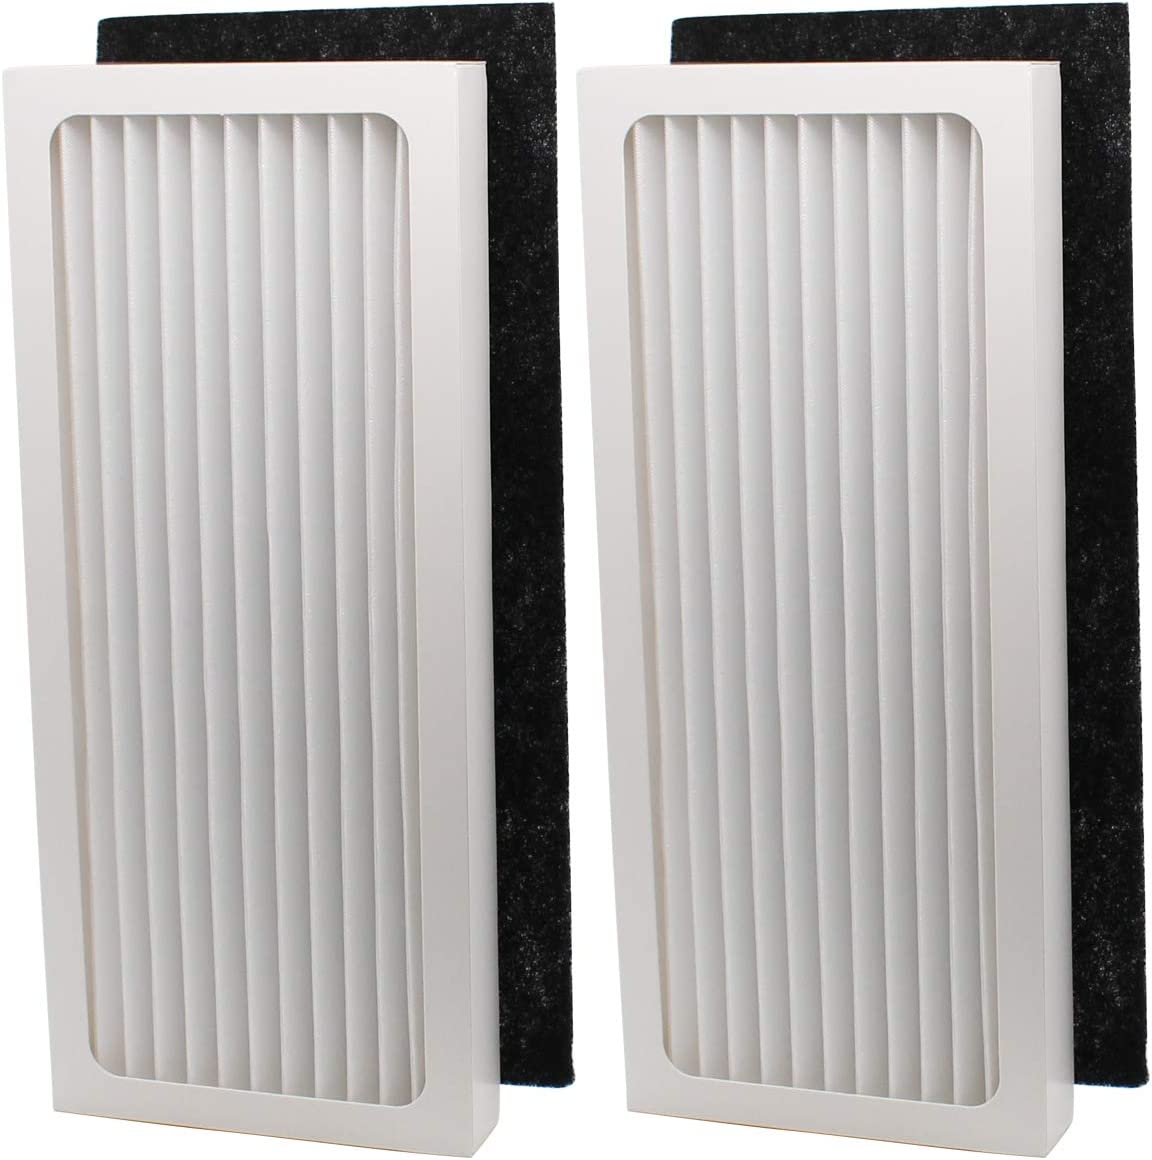 ApplianPar Pack of 2 Air Filter Replacement for Hamilton Beach True Hepa Air Purifier 04386A, 04383 04385 04384 990051000